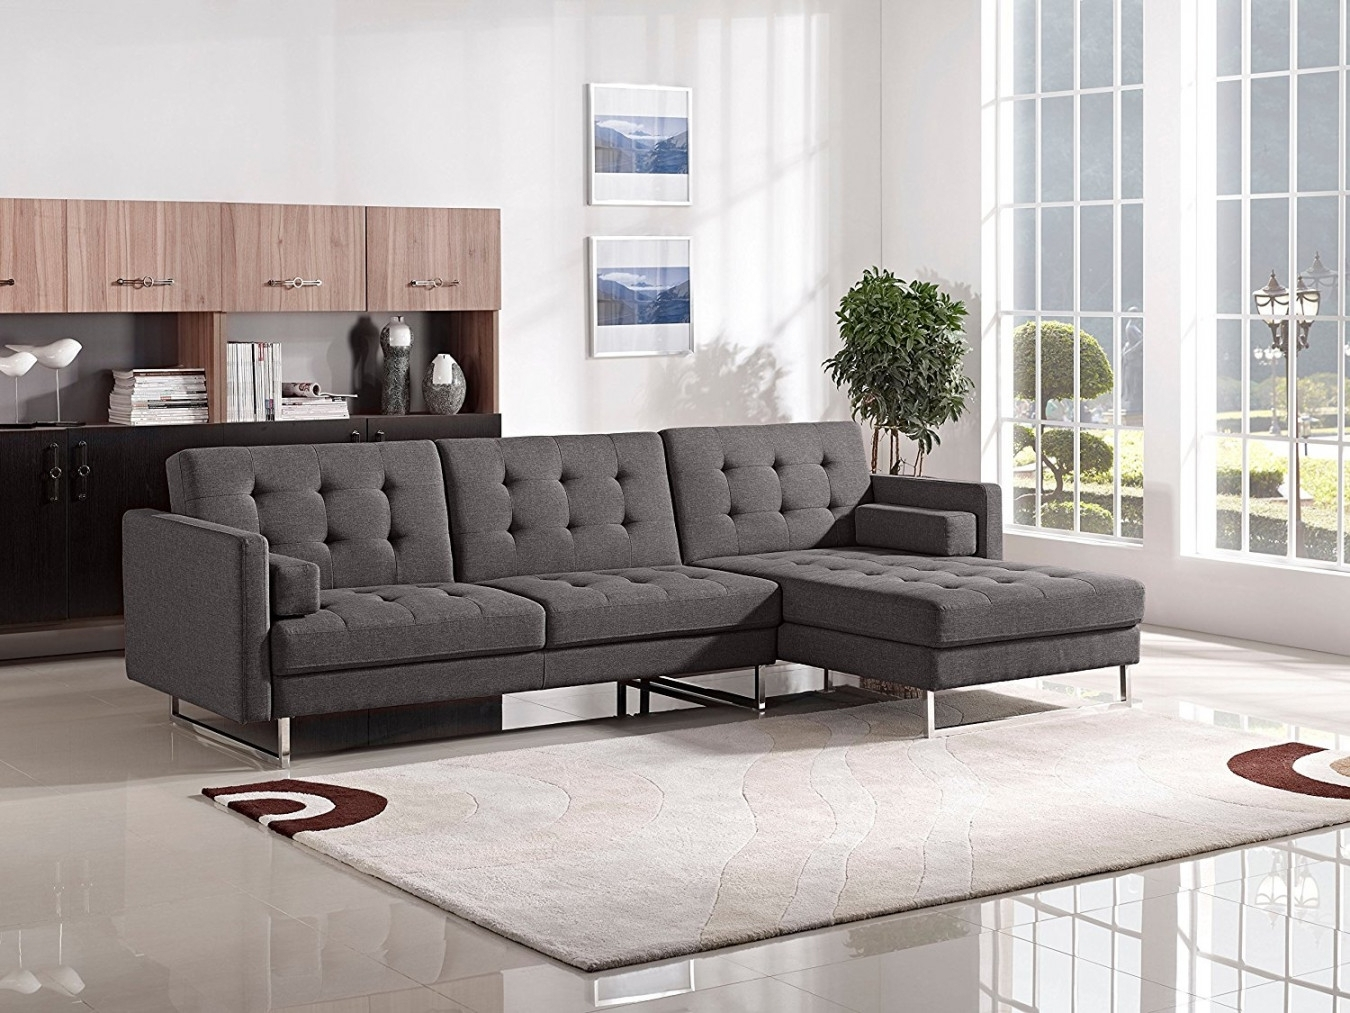 Sofa : Tufted Sectional Sofa Queen Sleeper Sofa' Loveseat Sofa Bed Throughout Tufted Sectional Sofas (View 8 of 10)